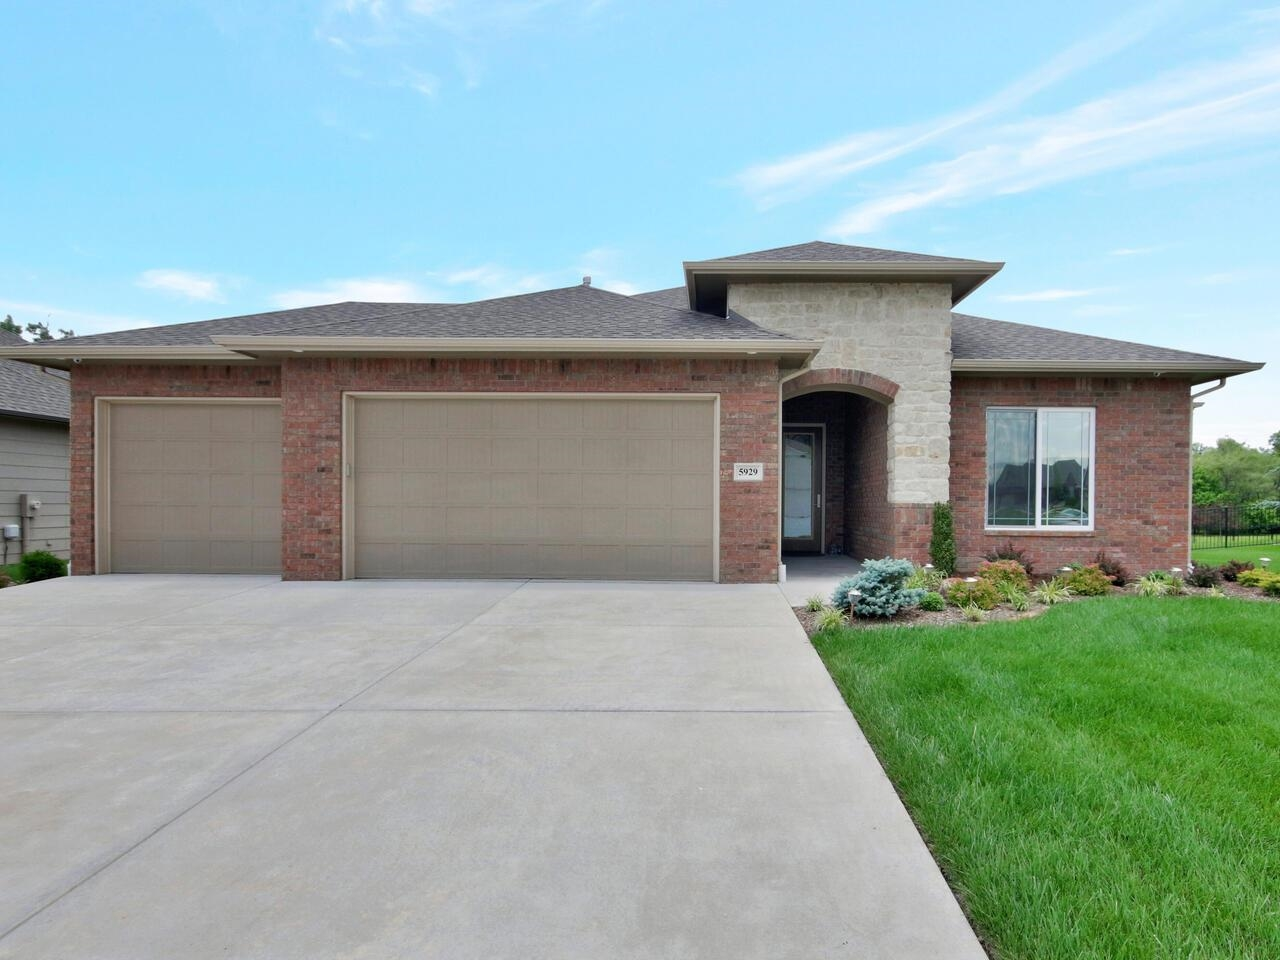 BETTER THAN NEW! Pristine zero entry home located on a beautifully landscaped half acre lot with a f